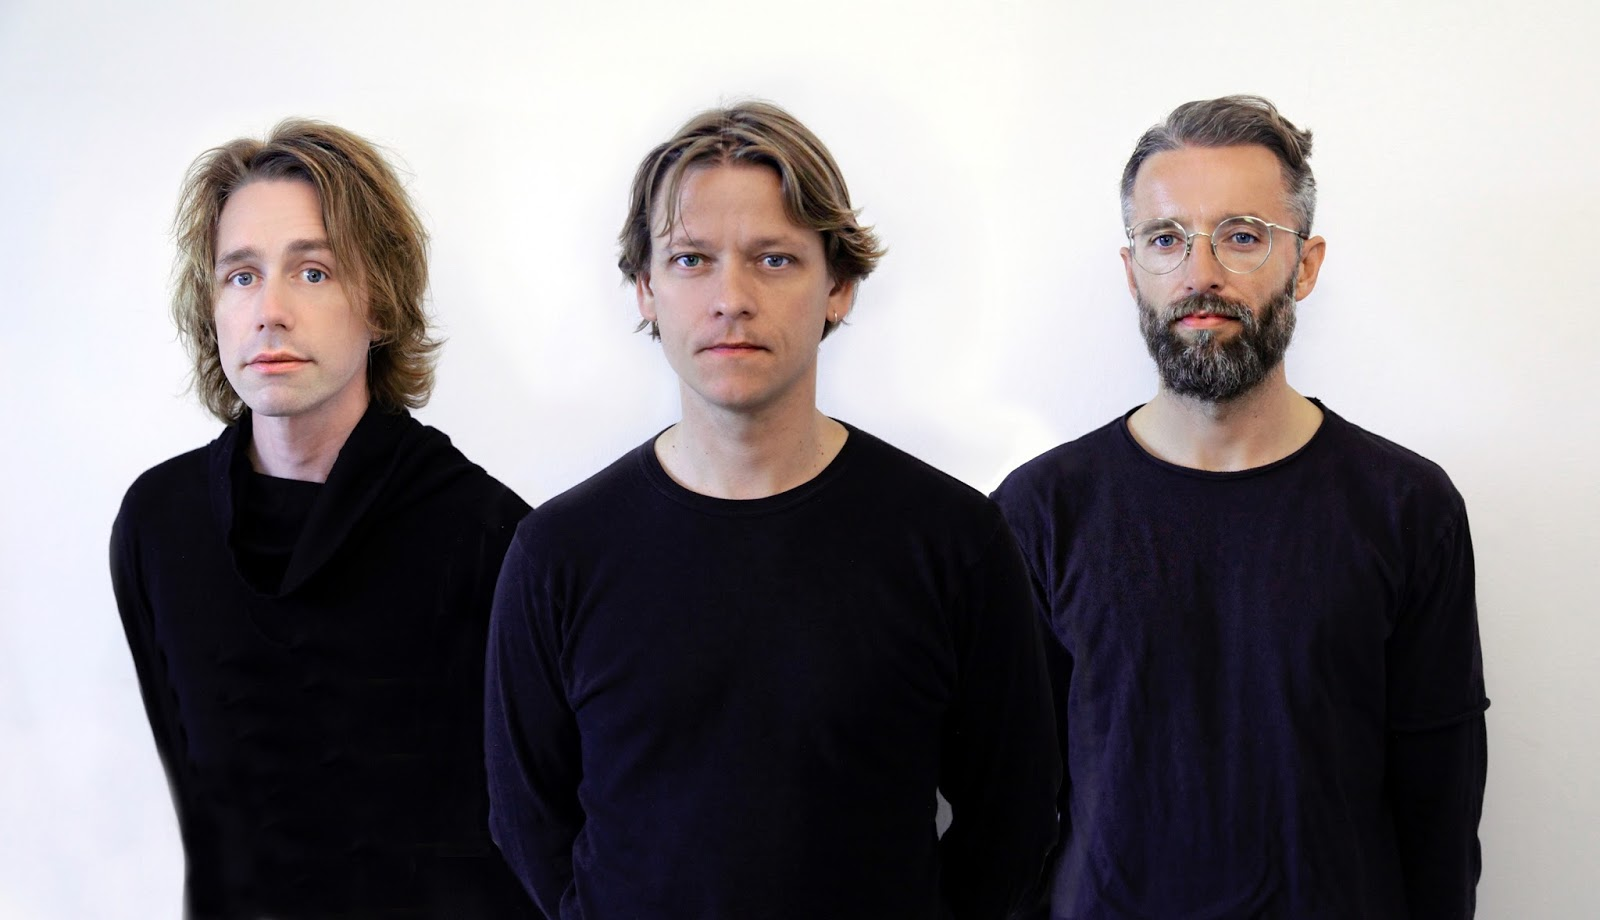 Mew to perform at Indonesia's brand new music festival, Stellar Fest